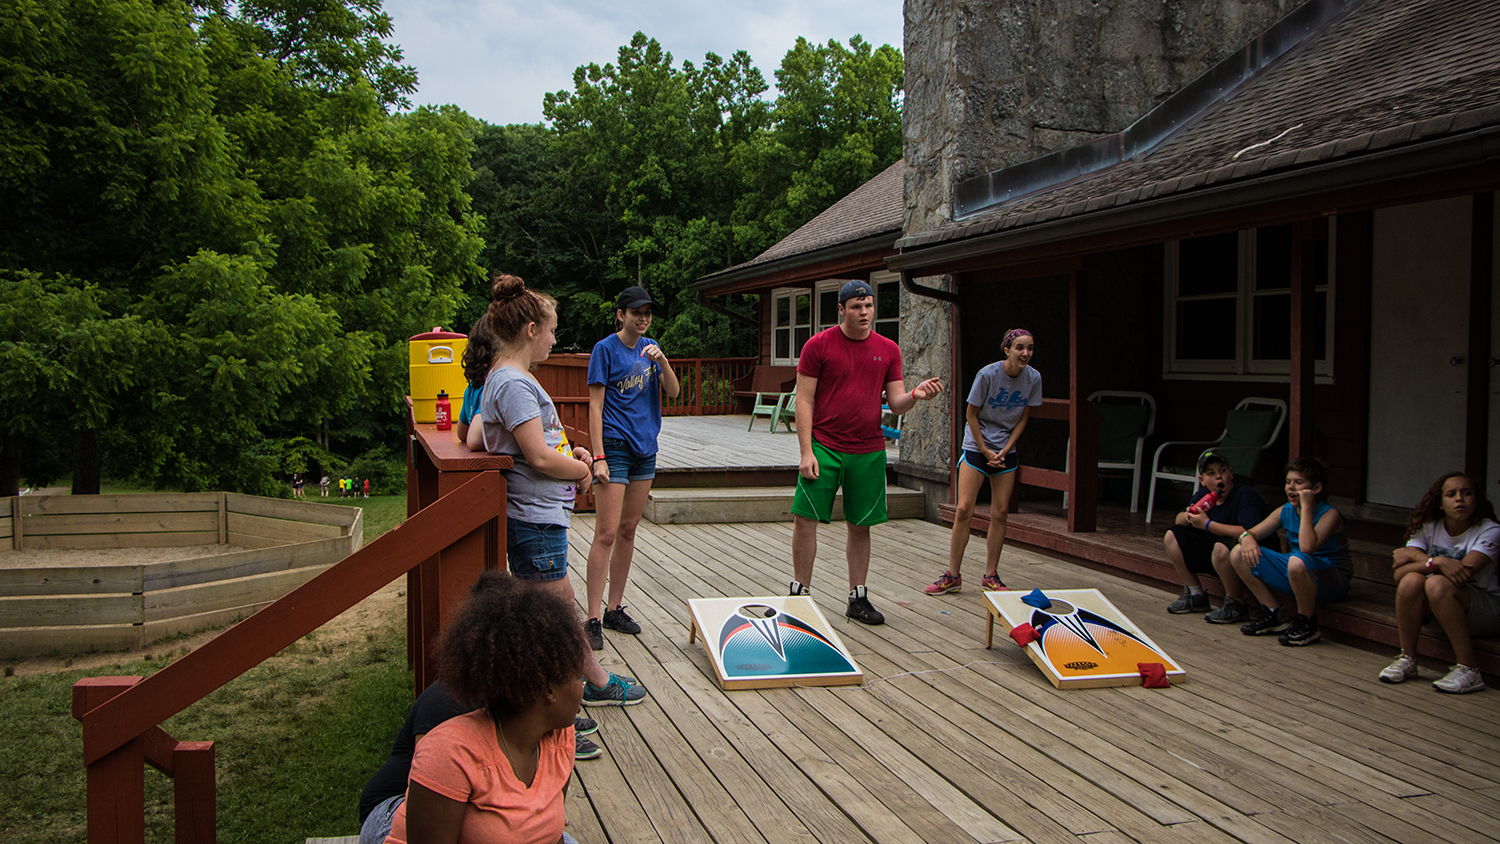 adventure camp Delivering the fun of scouting: welcome to adventure cub and webelos adventure camp is an incredible place for young scouts they can let their imaginations soar while having fun in the outdoors.